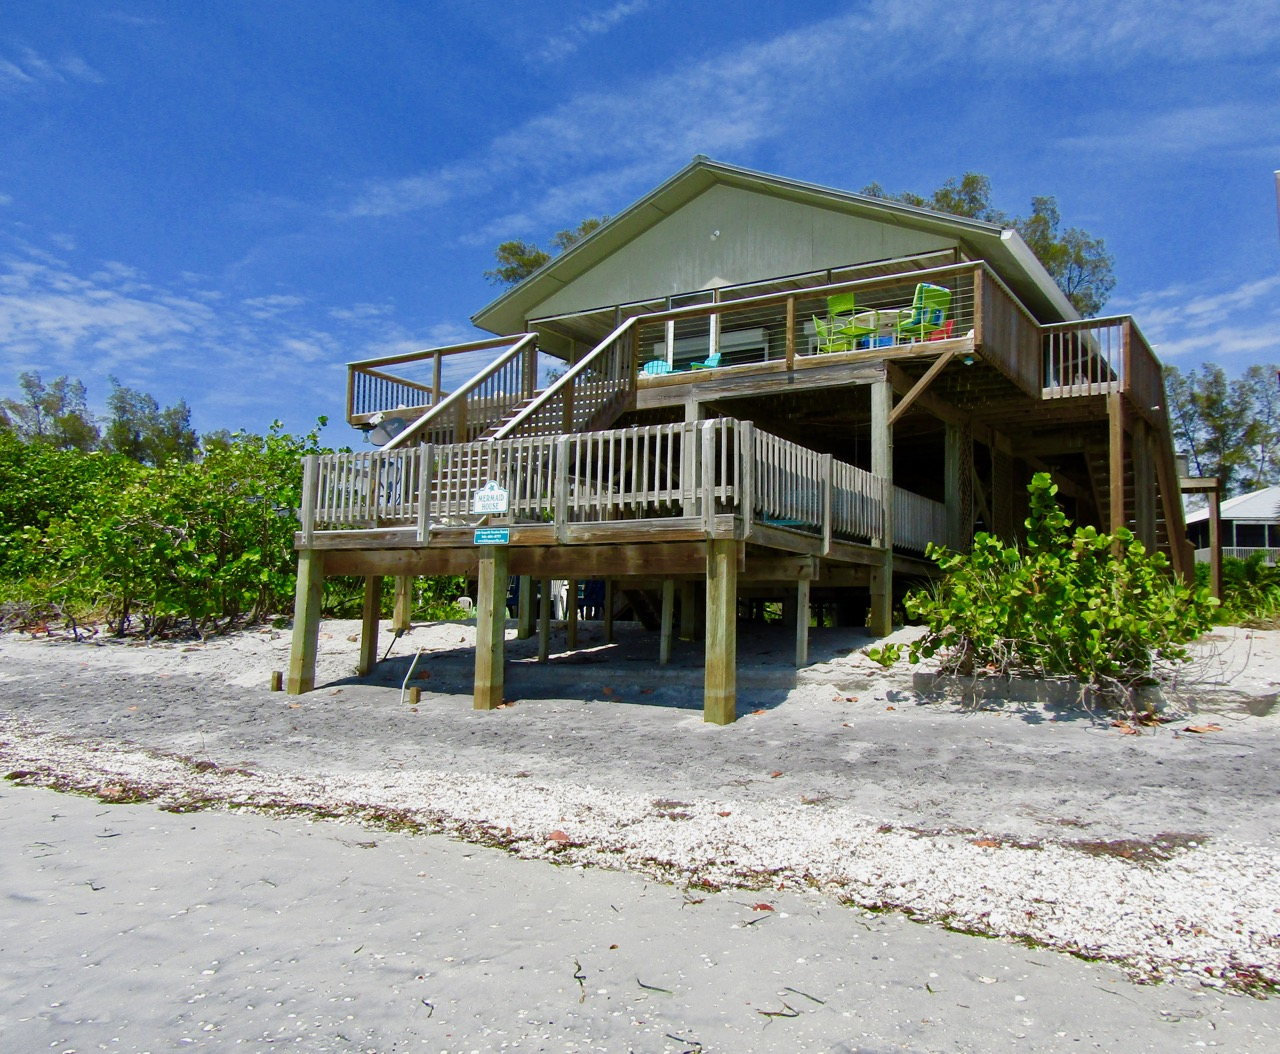 Mermaid House - 3-Bedroom, 2.5 Bath1 KING BED, 1 QUEEN BED, 1 TWIN, SLEEPS 5